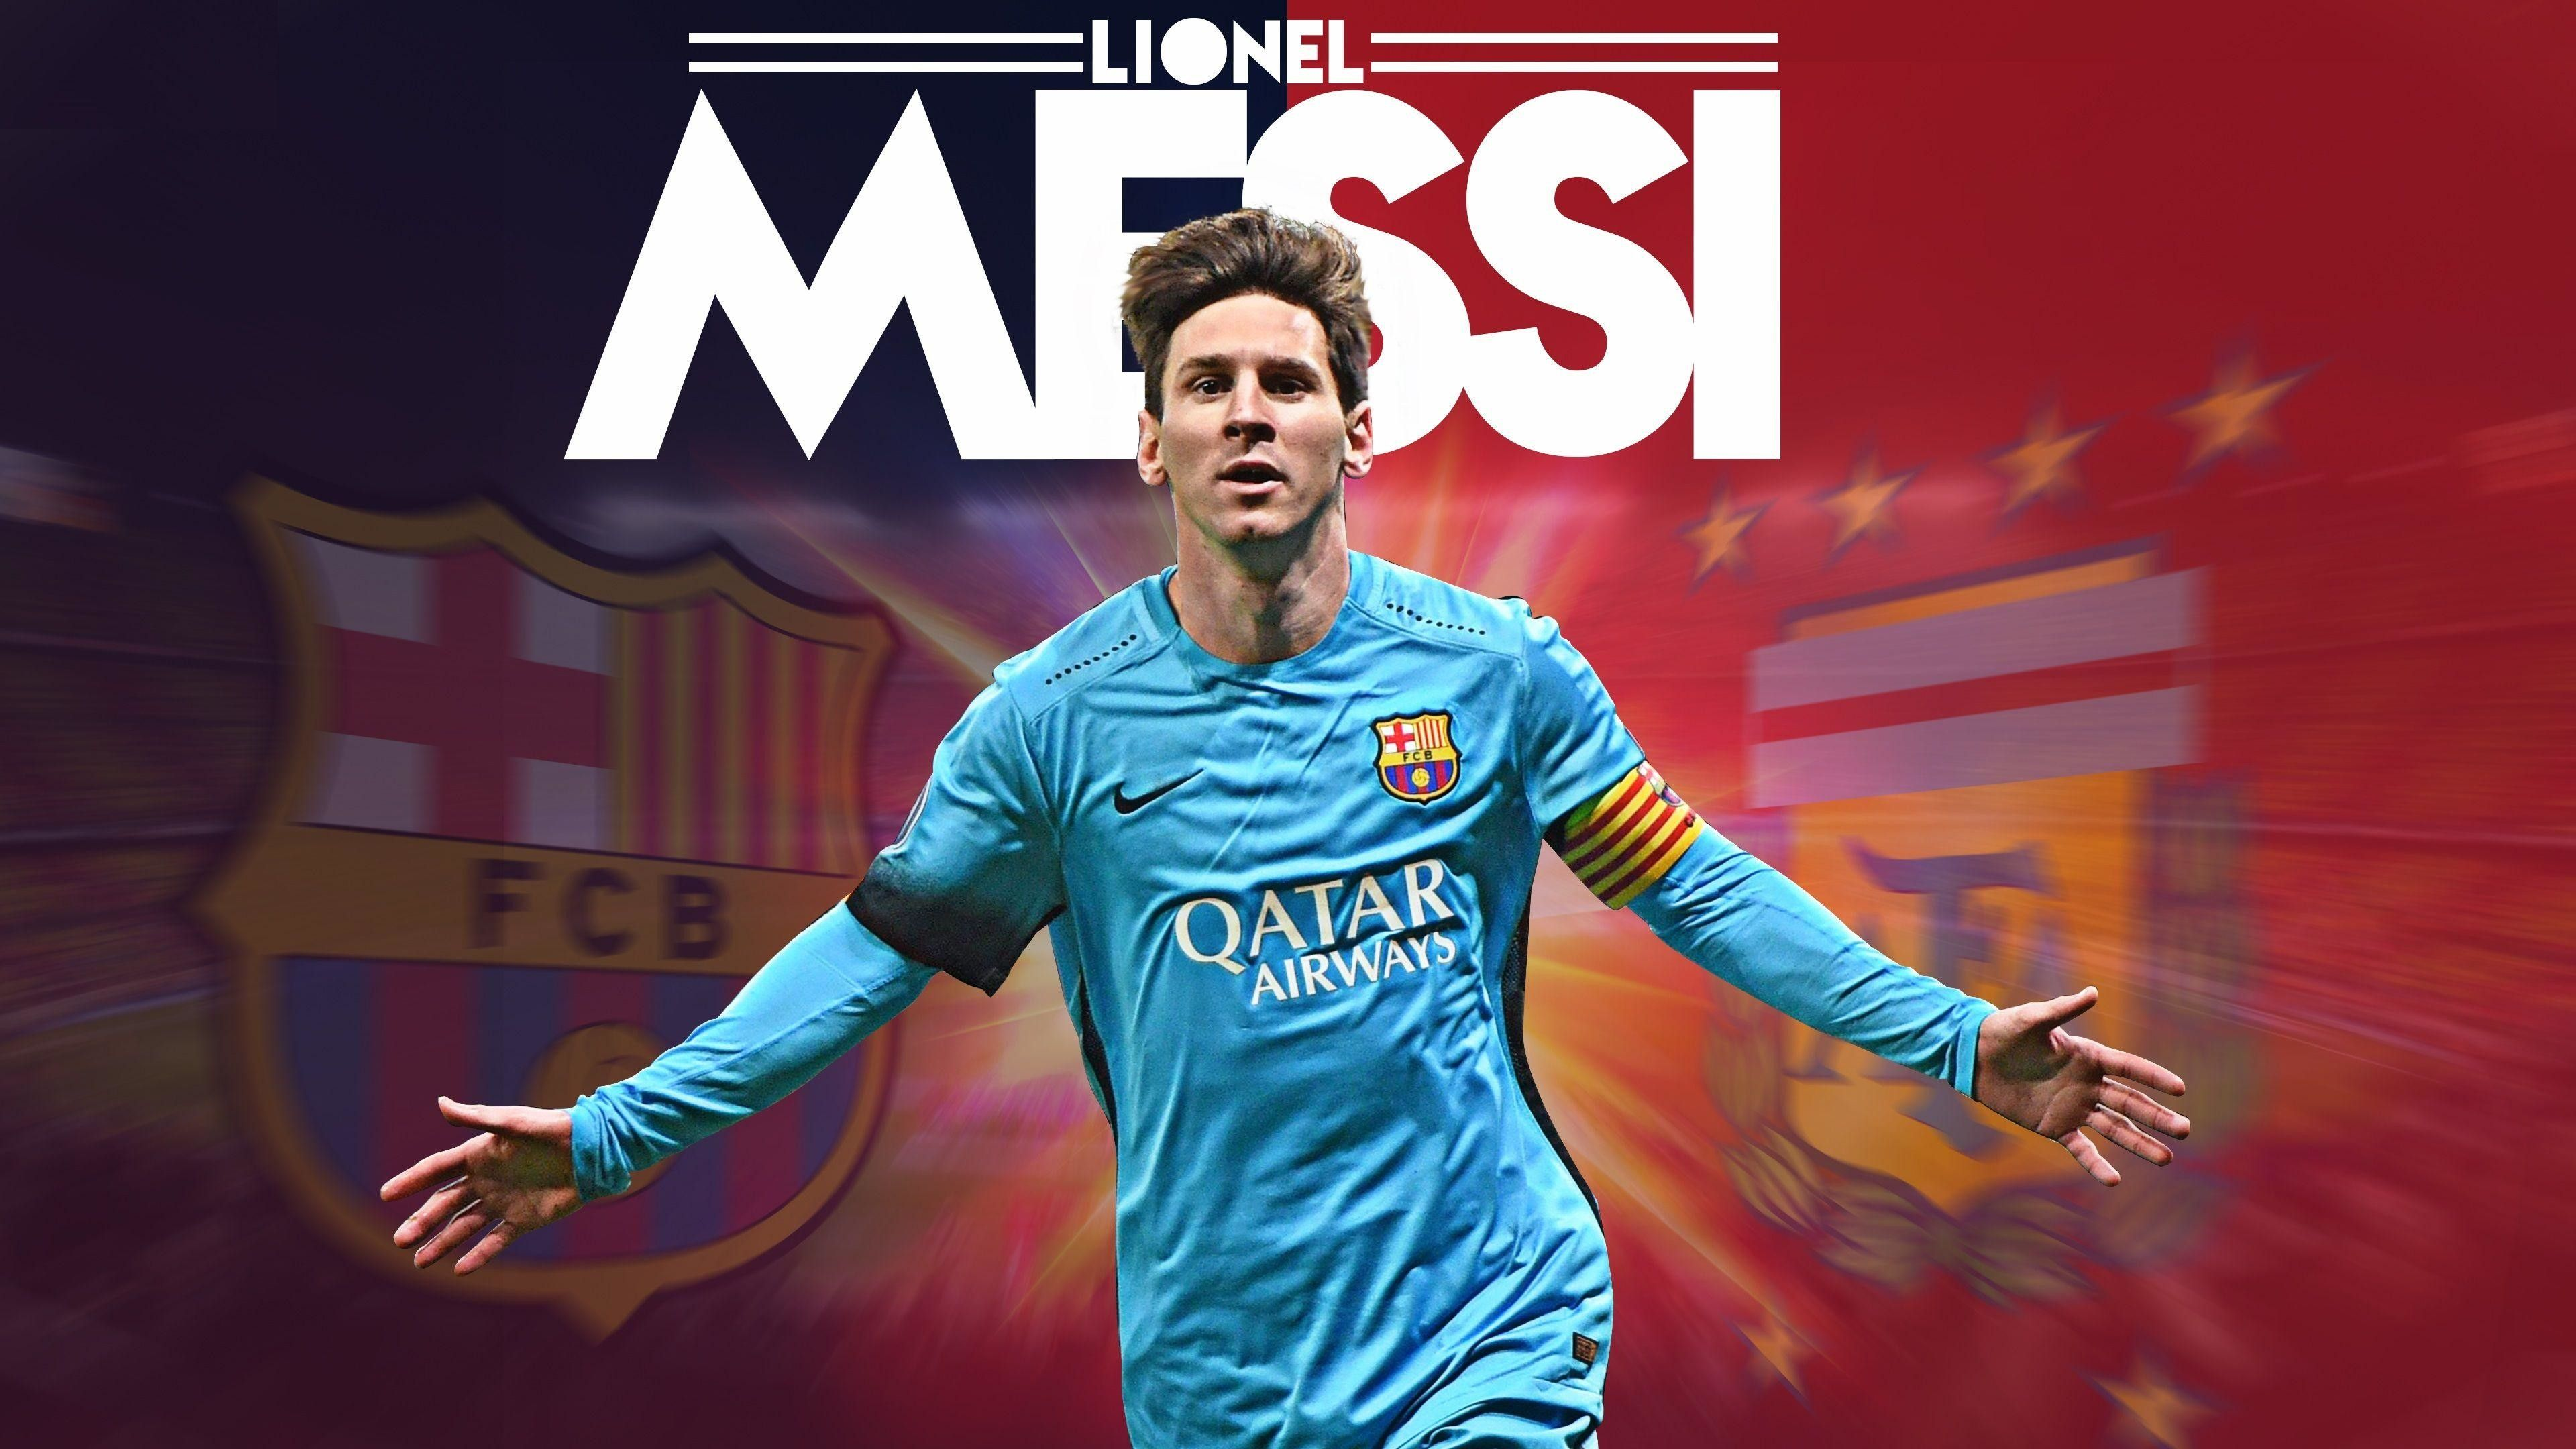 Messi Wallpaper 2018 HD ·①